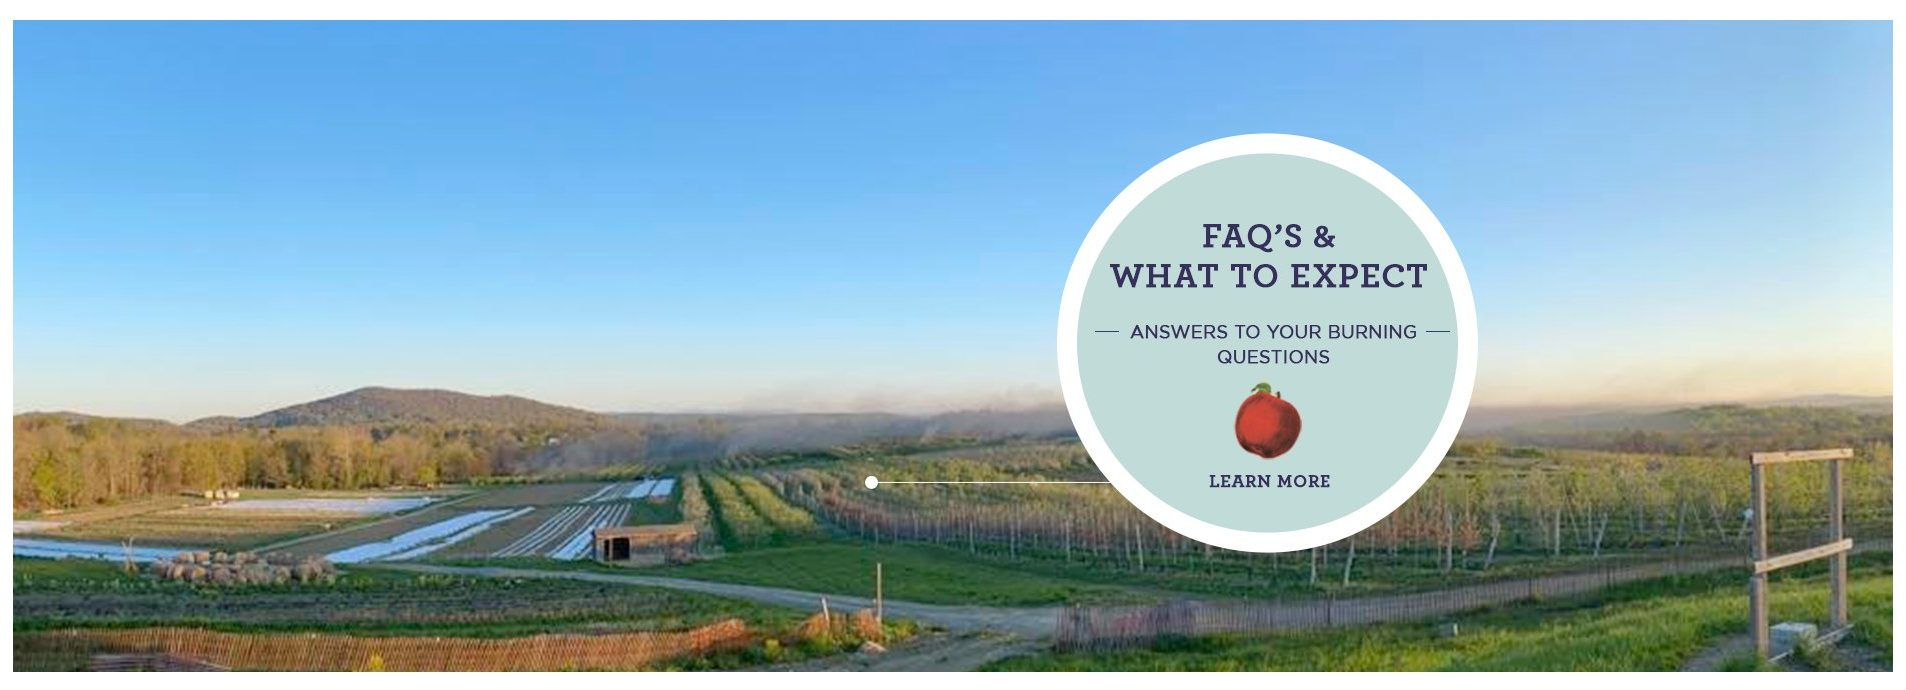 Click to view FAQ's & What to Expect Page